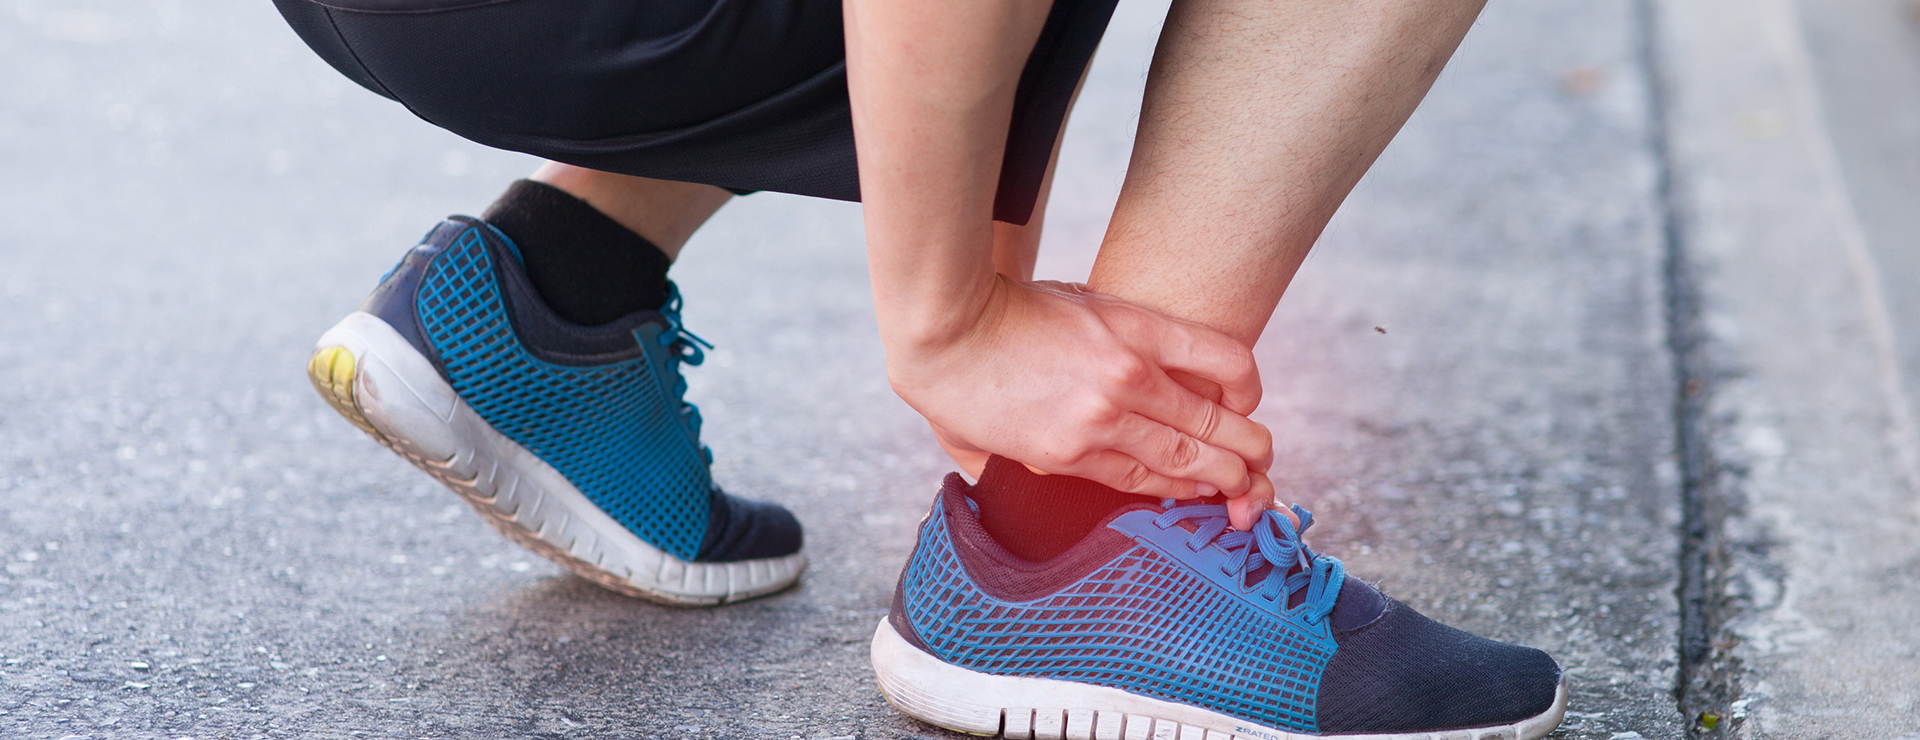 Runner experiencing ankle pain